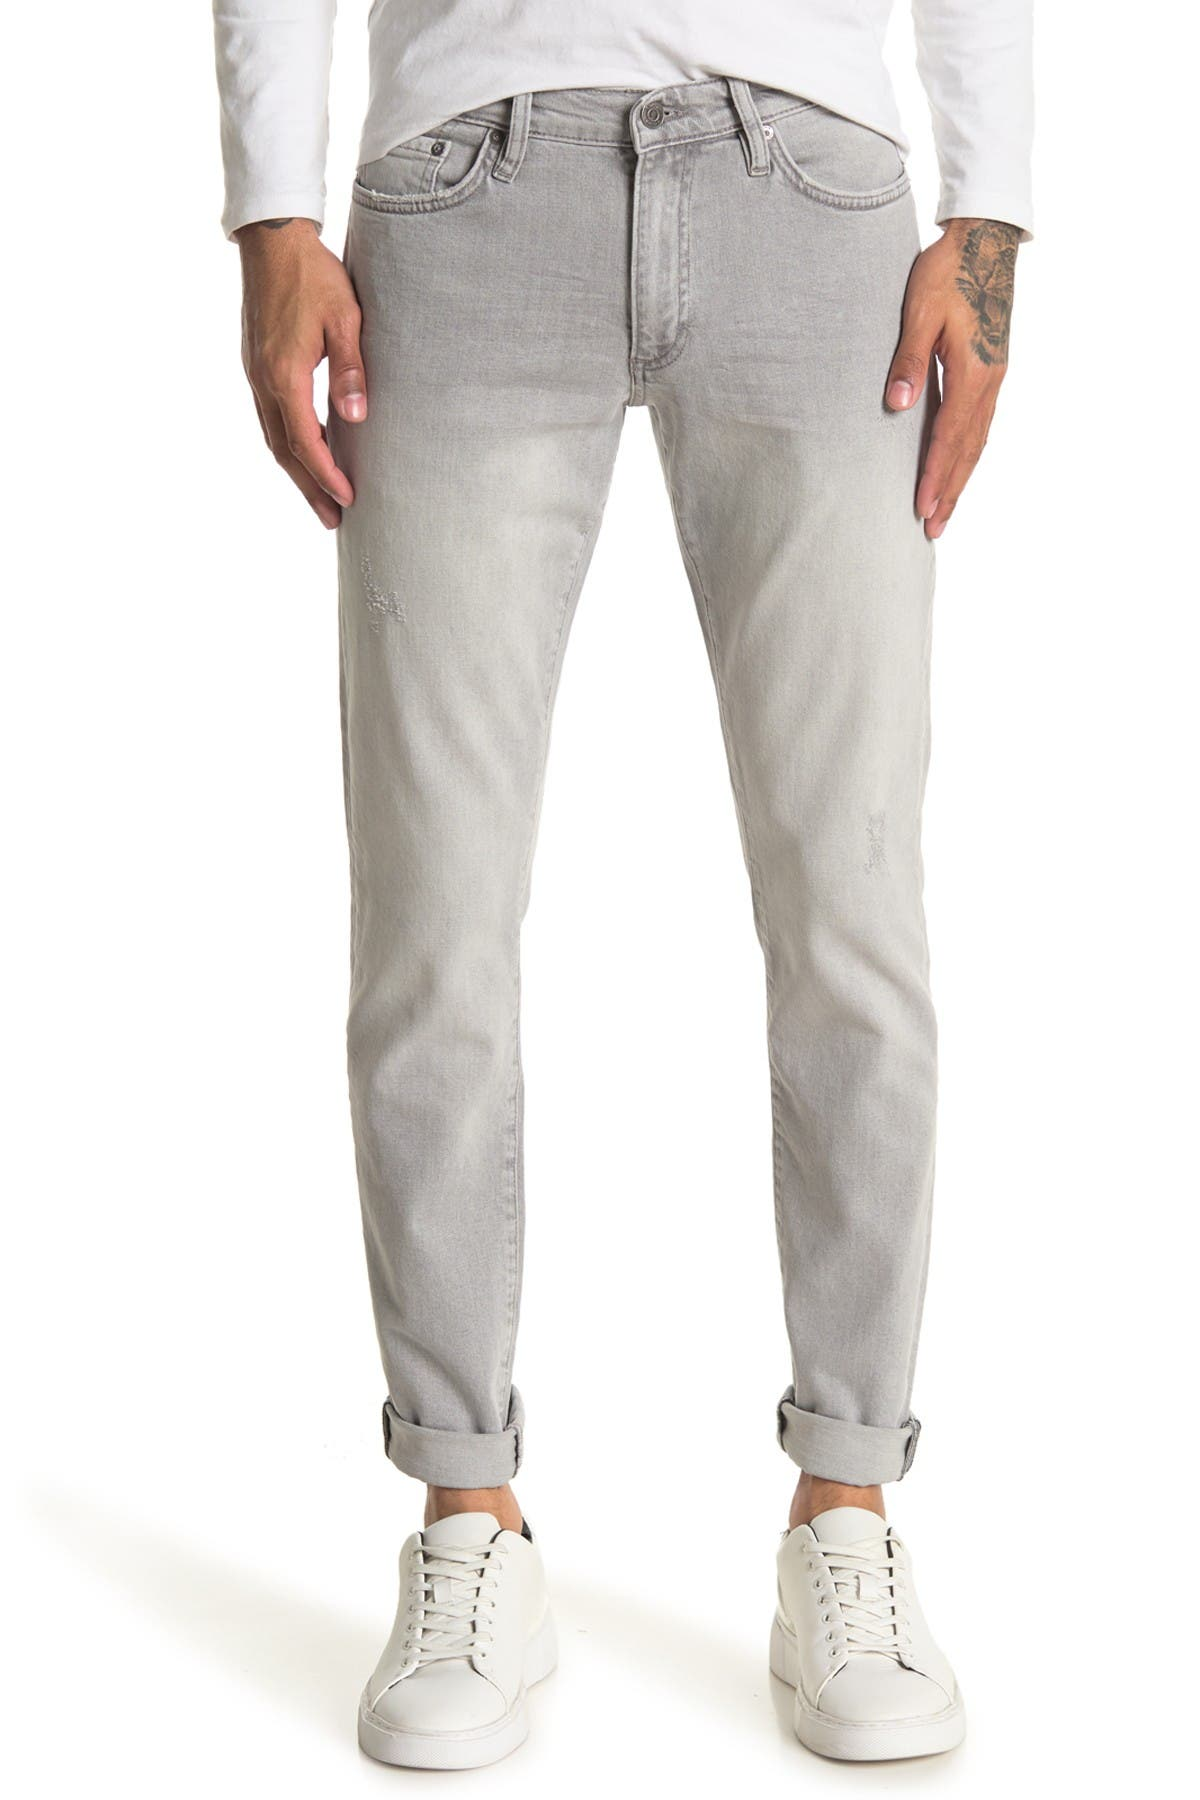 Image of OVADIA AND SONS Skinny Jeans